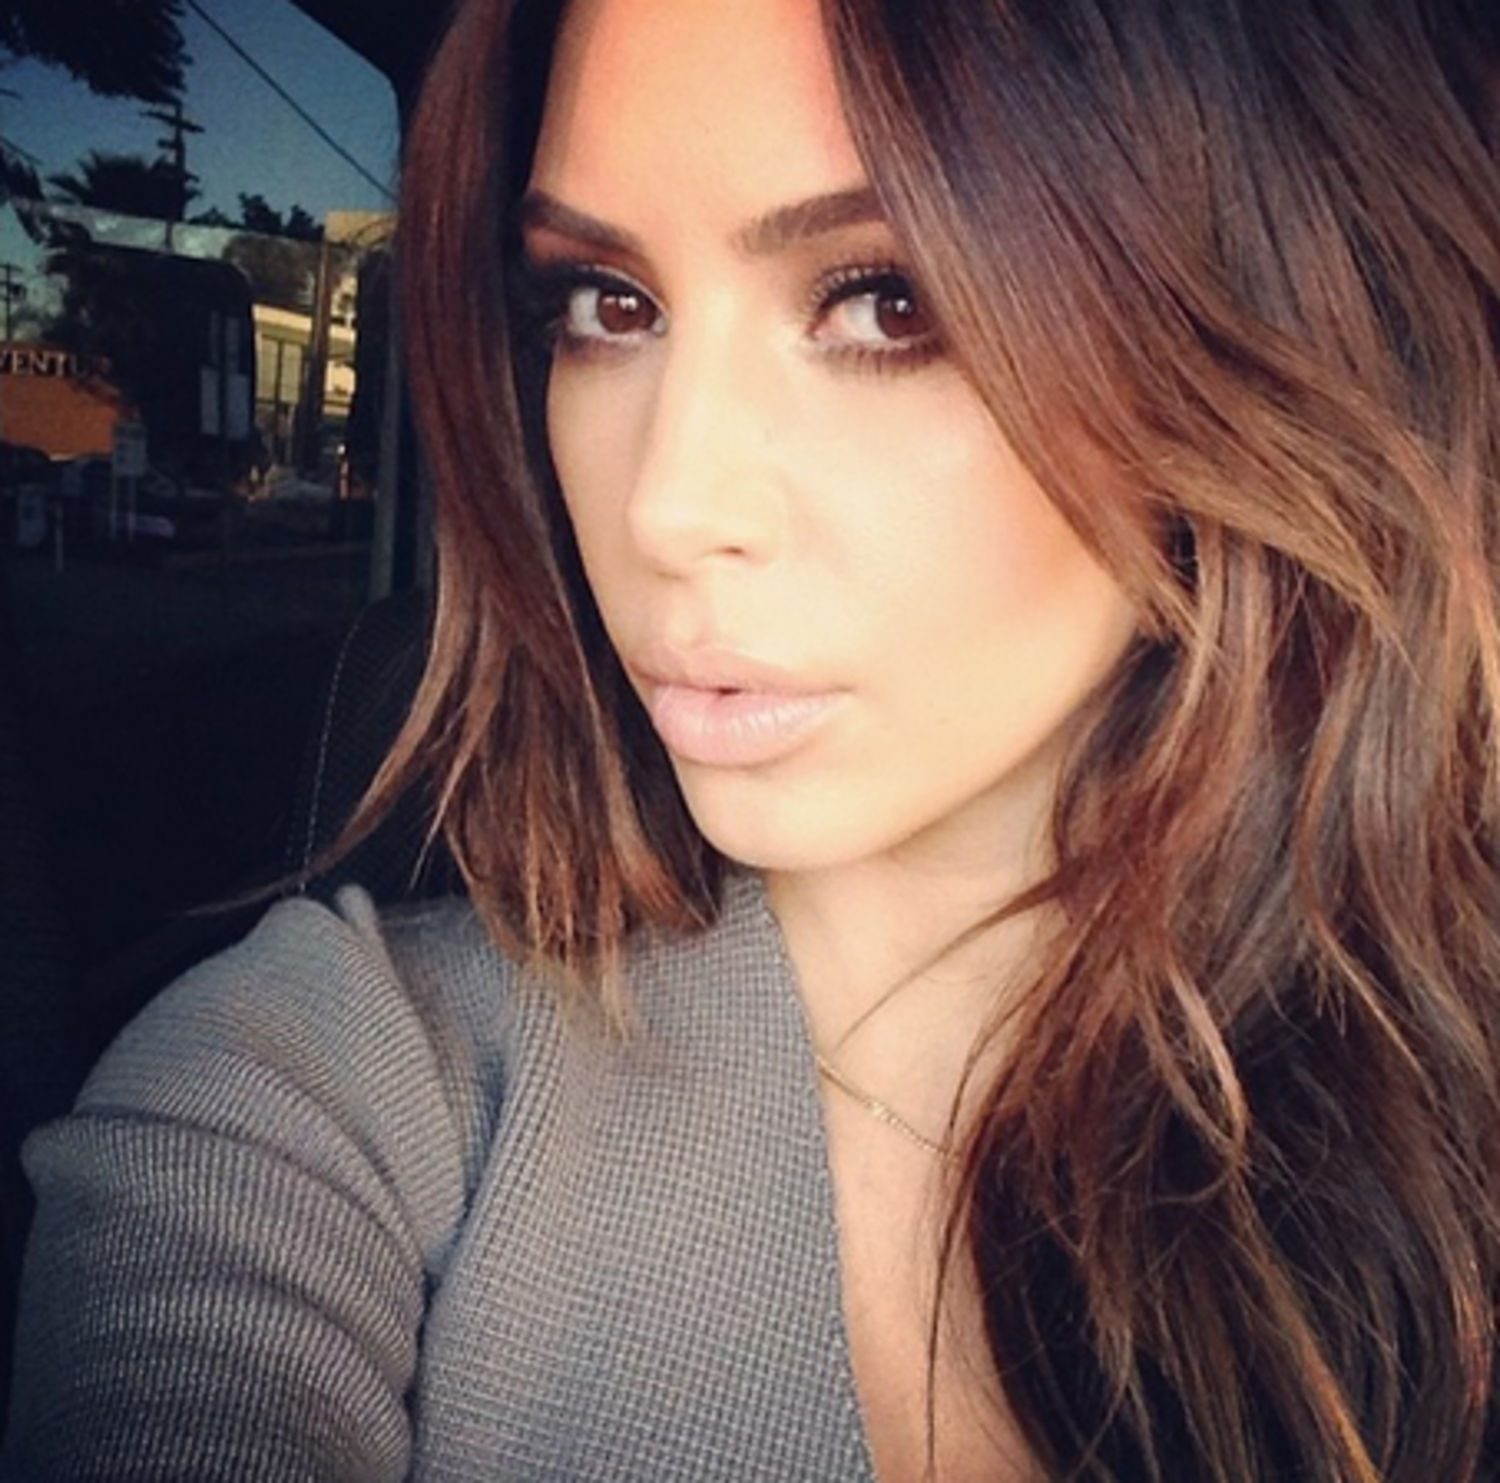 kim-kardashian-selfie-secret-pictures-main